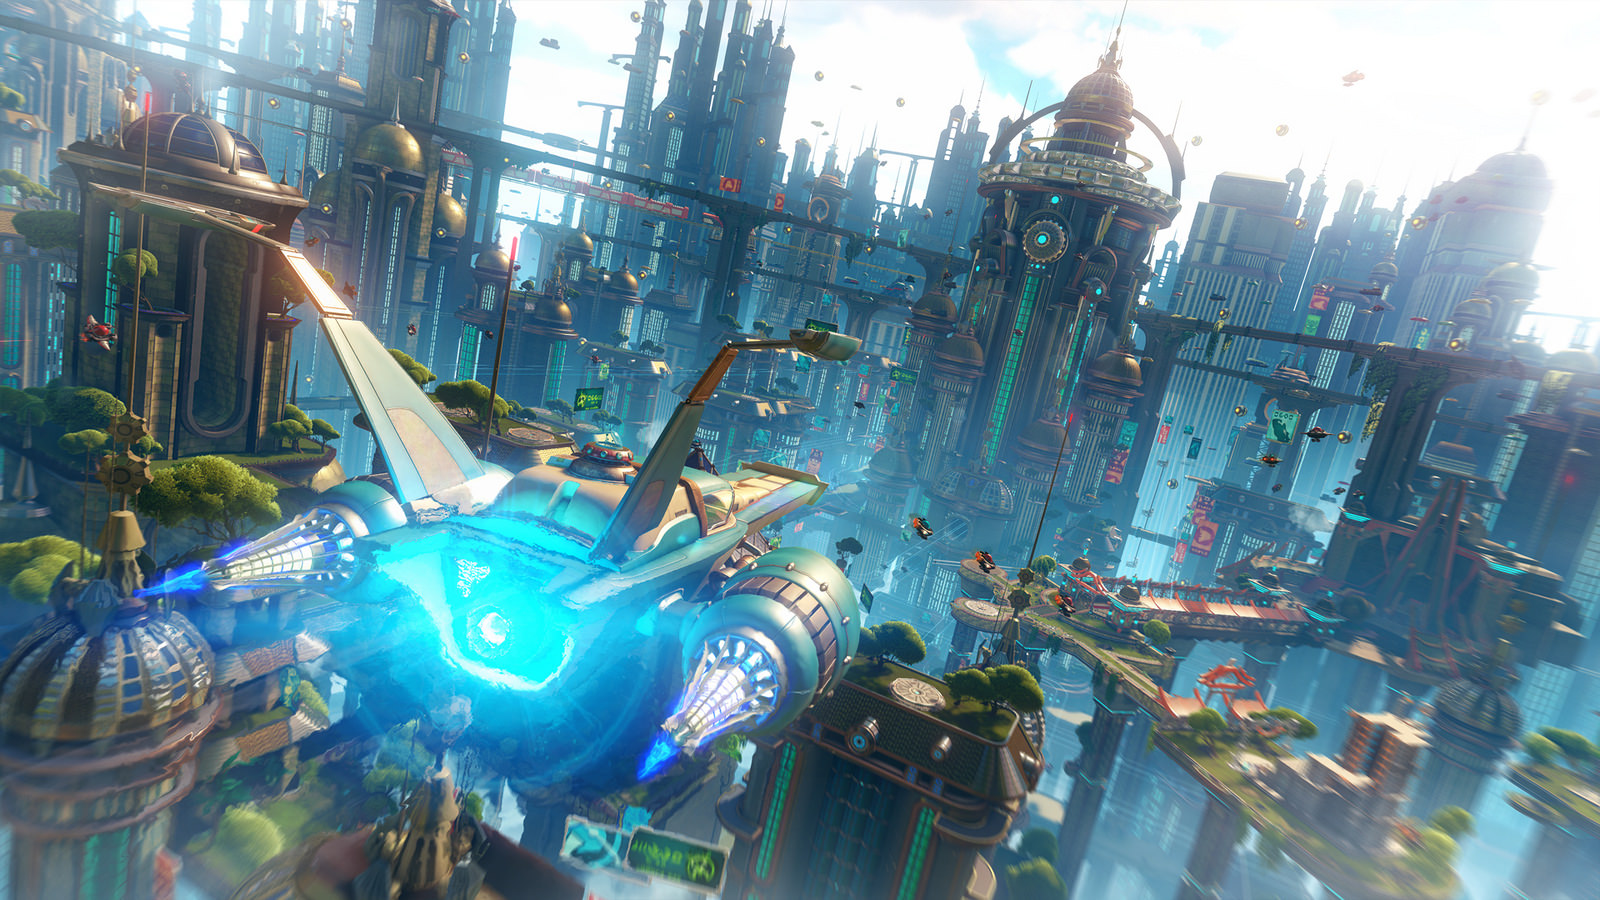 Ratchet And Clank Ps4 Rida Karten